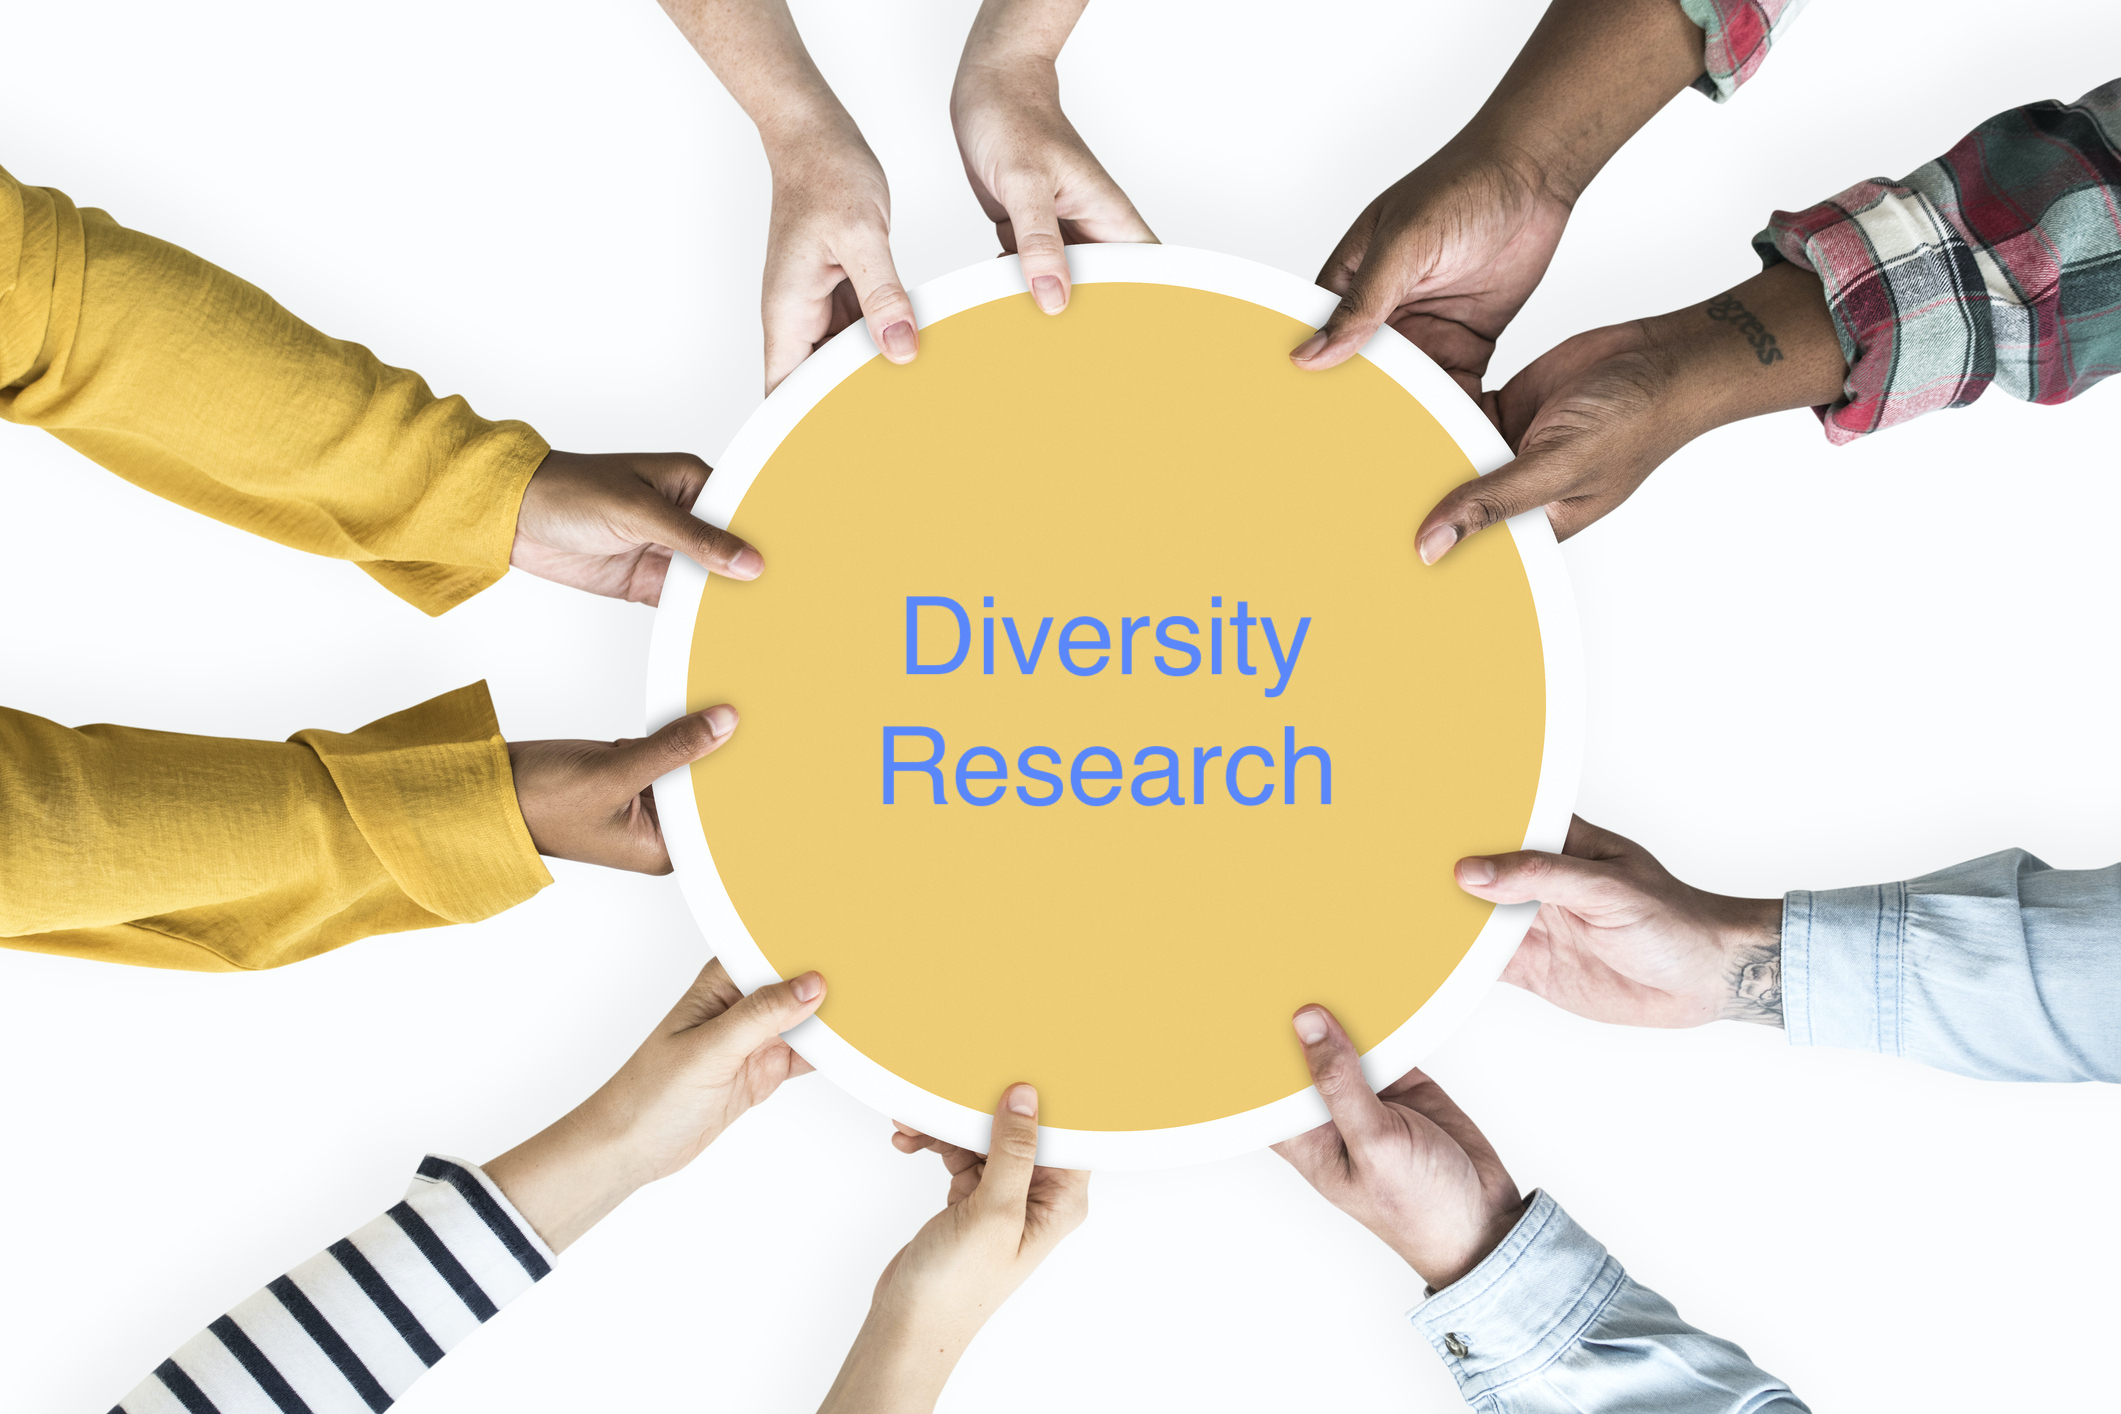 Diverse hands supporting a blank yellow round board